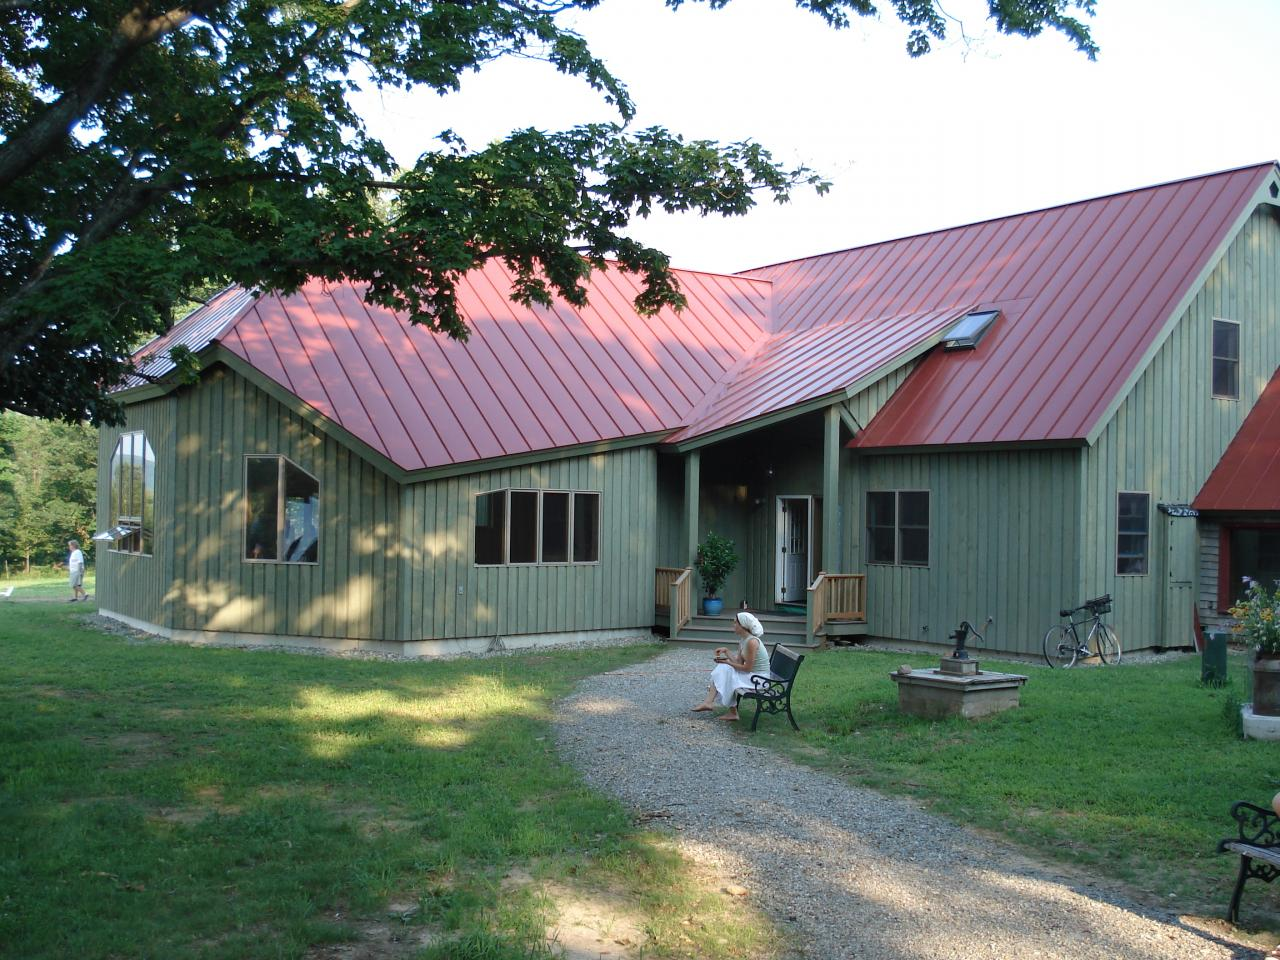 The Agora community building at Plowshare Farm